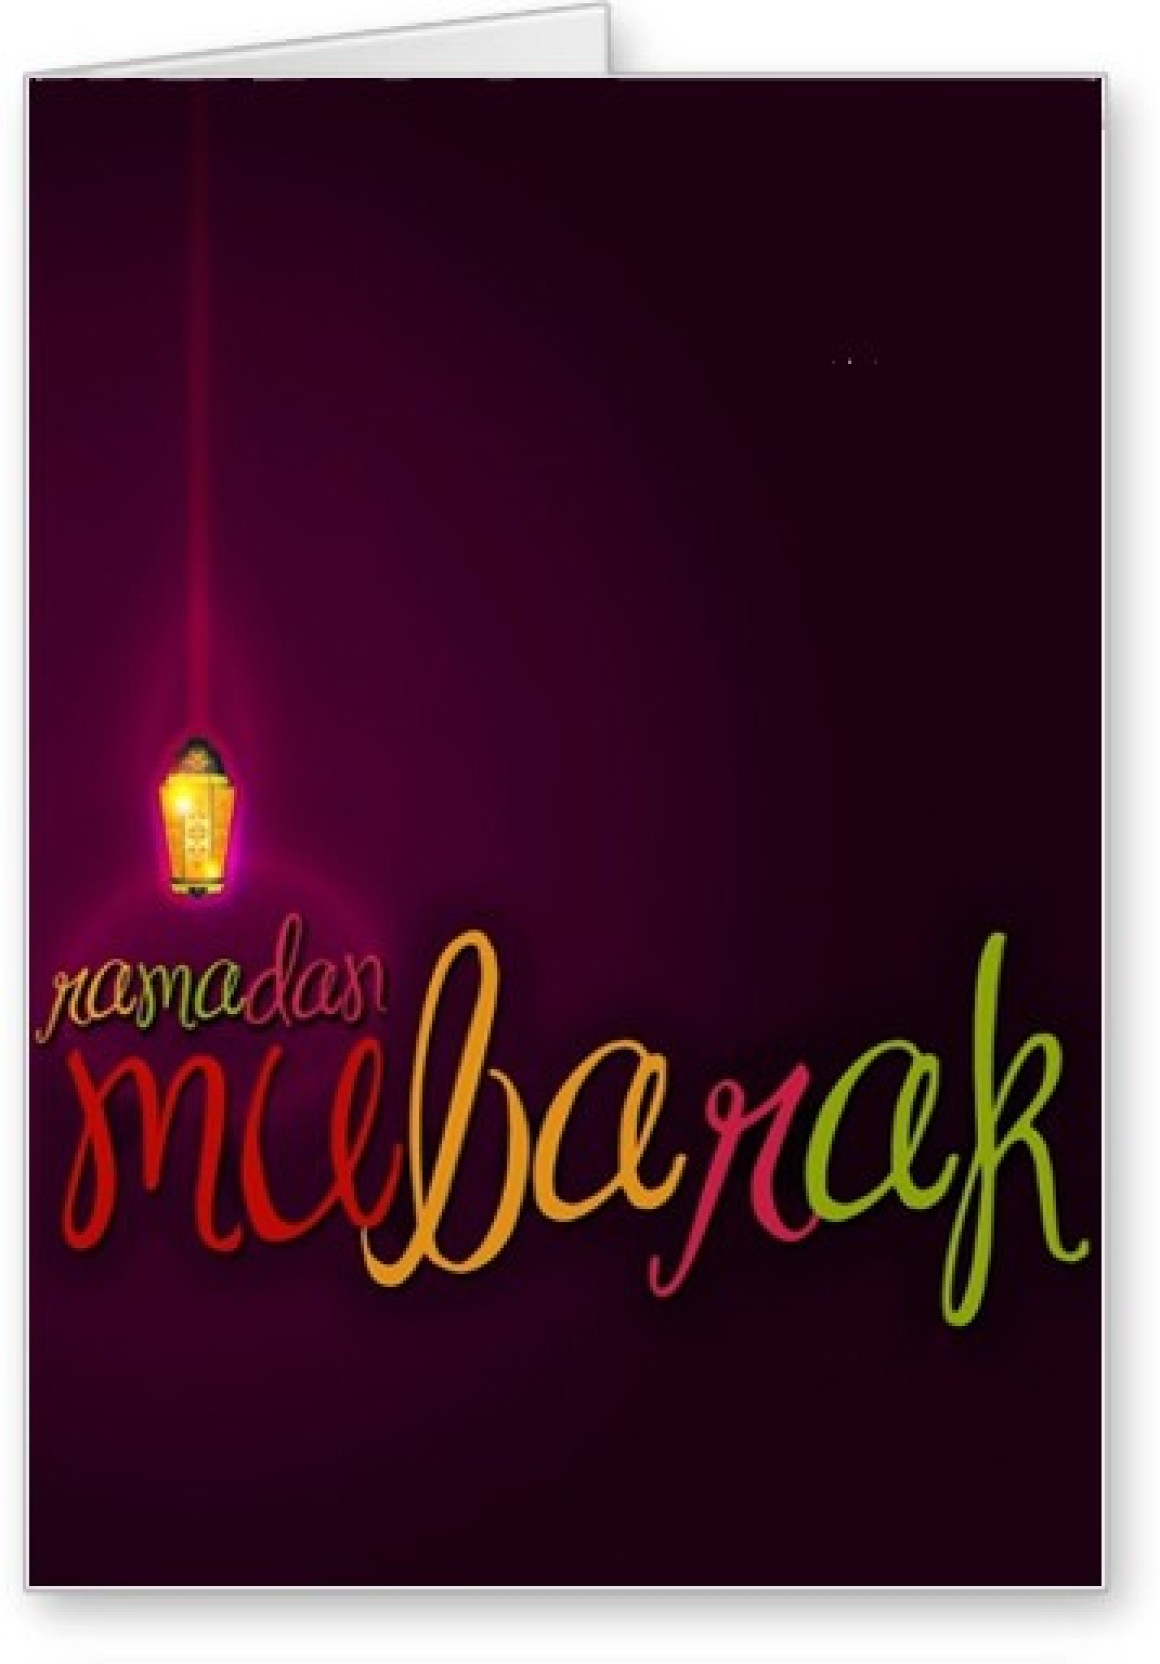 Lolprint Ramadan Mubarak Greeting Card Price In India Buy Lolprint